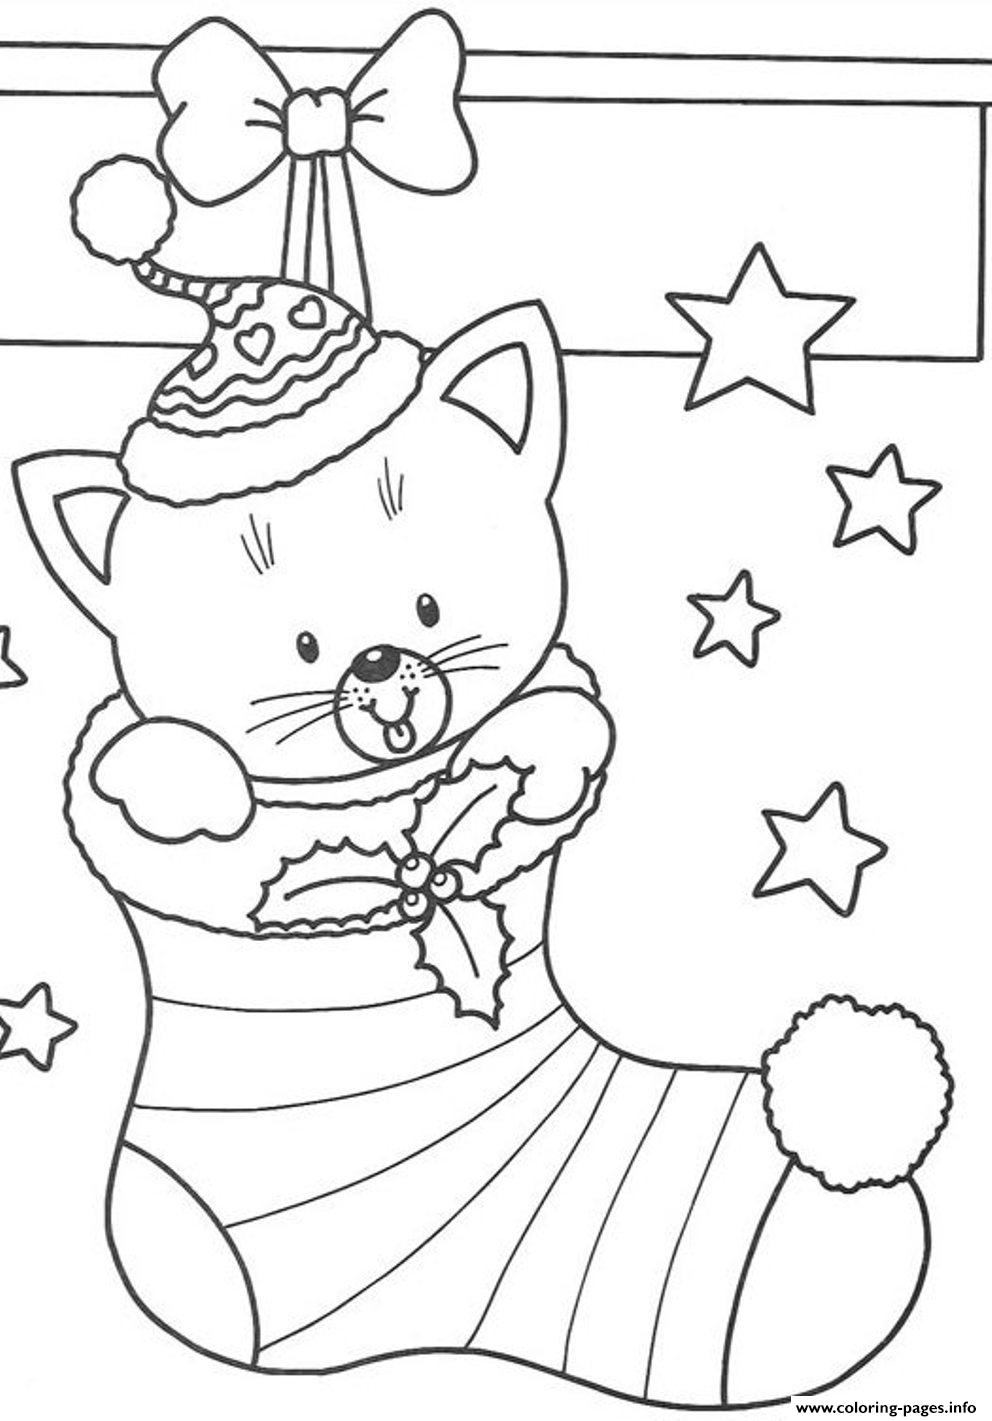 cat christmas coloring pages christmas sphynx cat with gifts christmas adult coloring coloring pages christmas cat